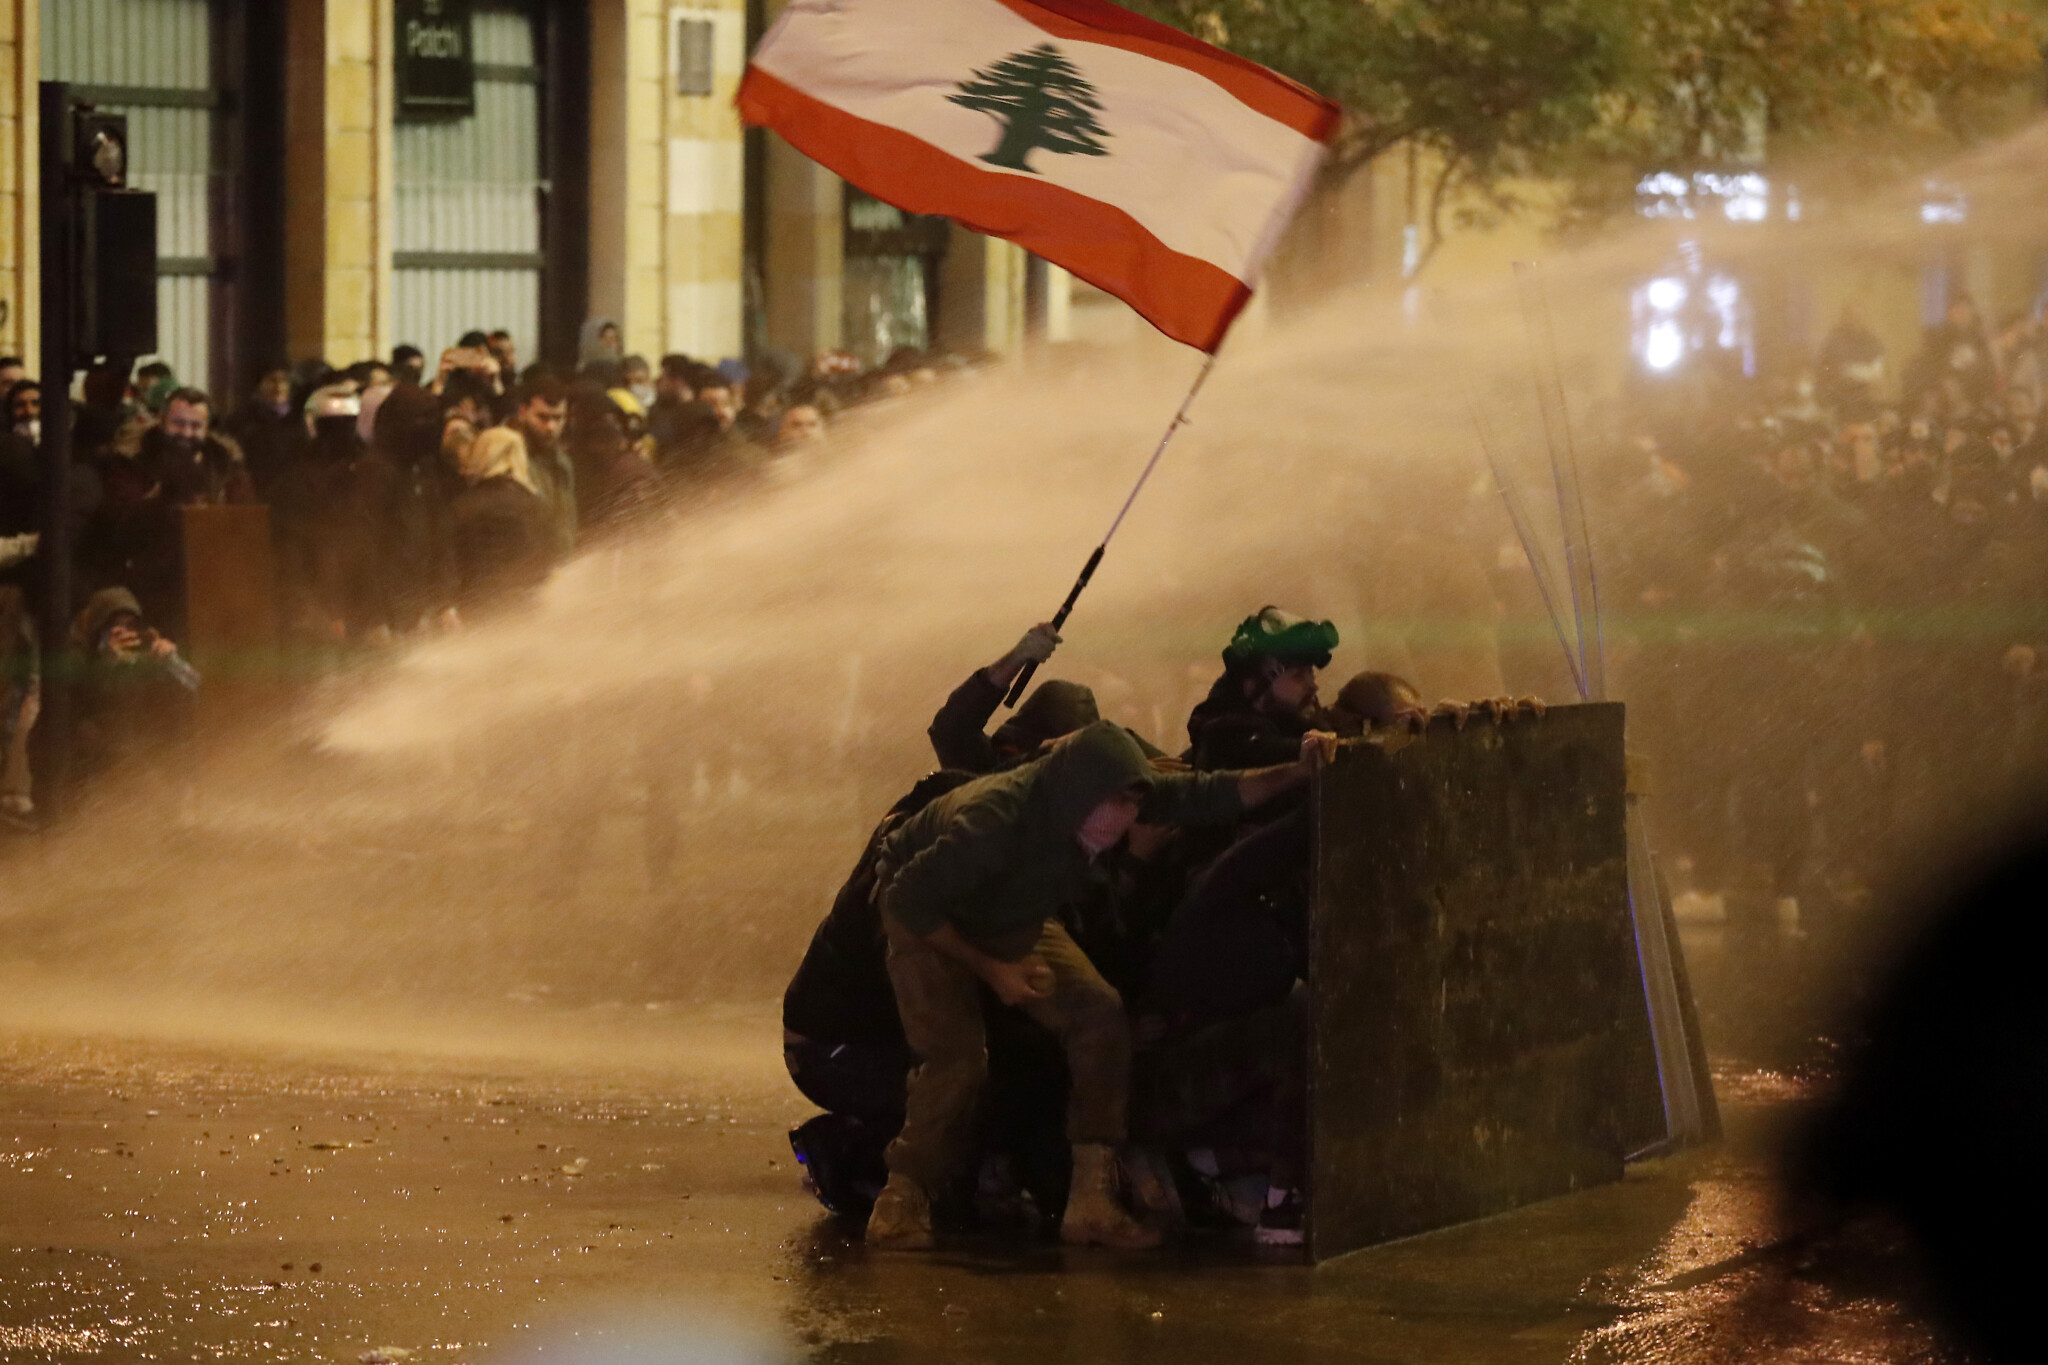 Lebanon Erupts In Violent Protest As Political Factions Appoint New Prime Minister